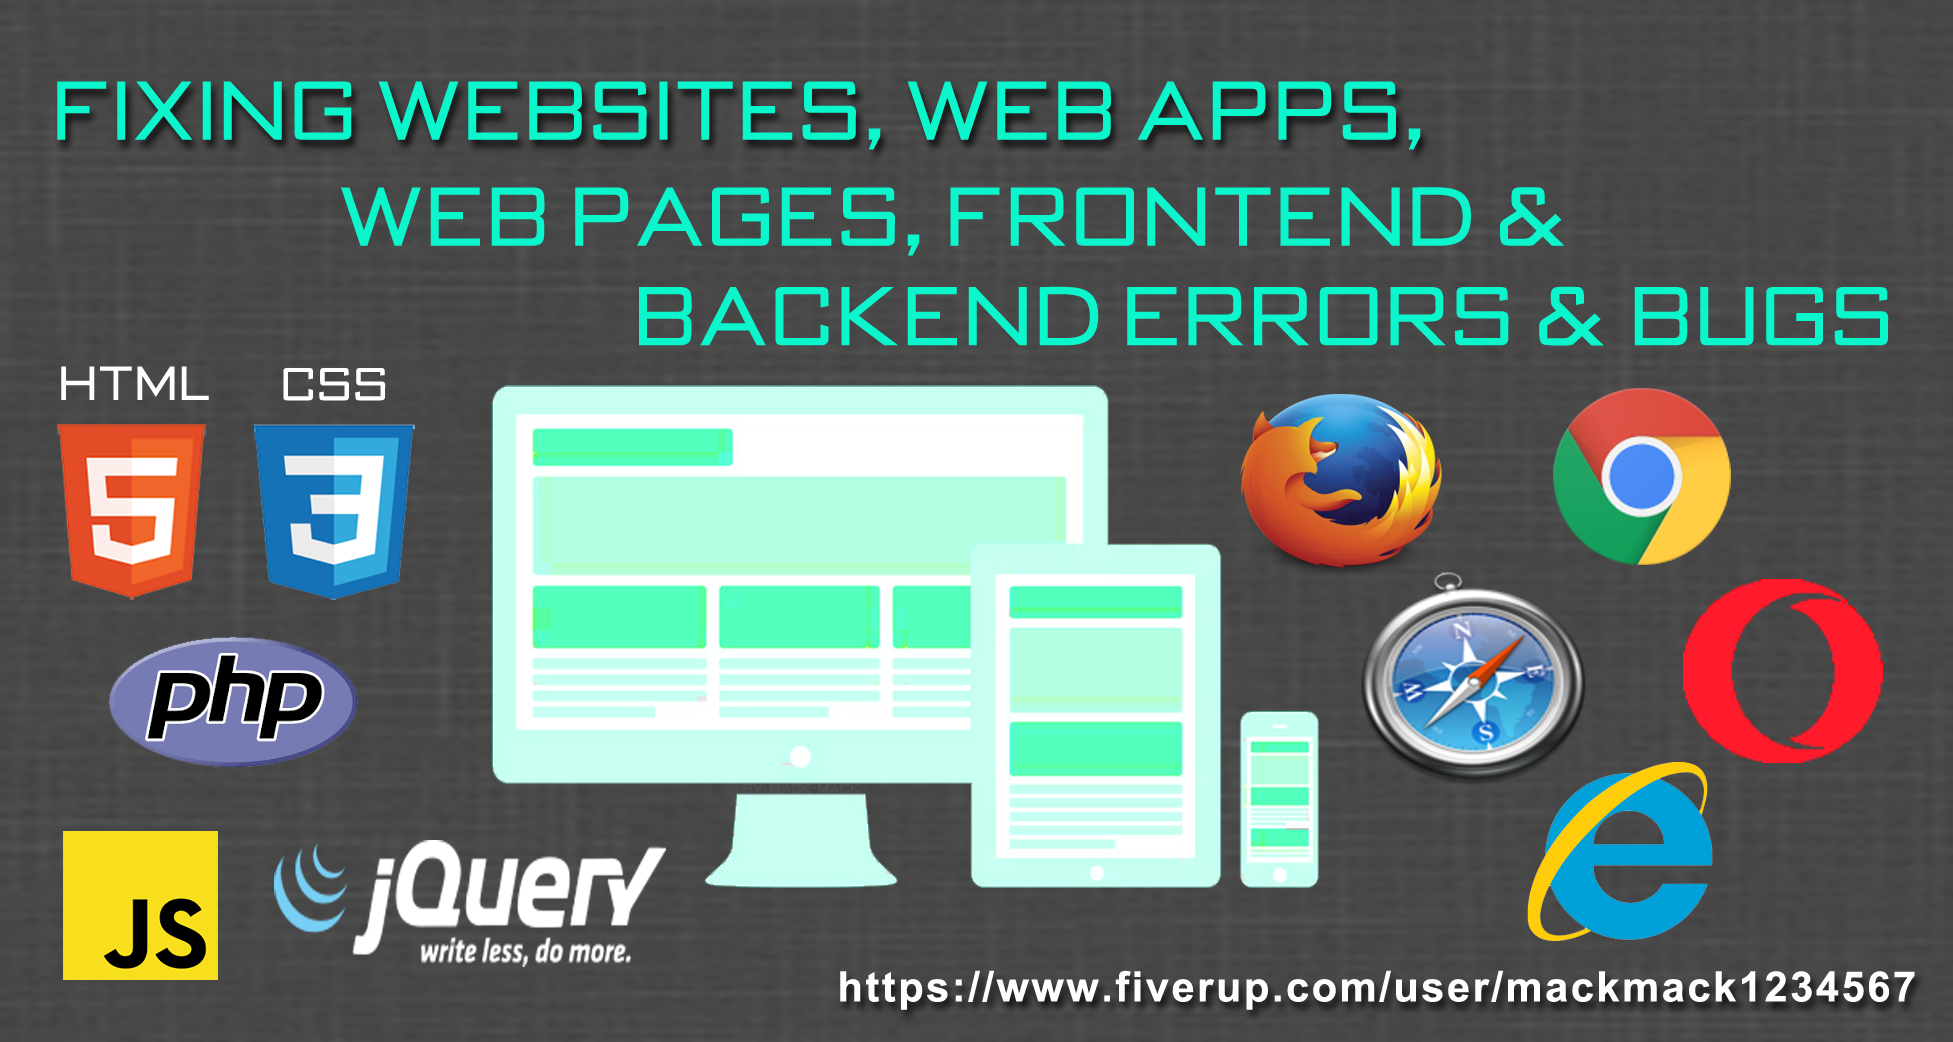 fix errors or bugs to your website, web pages or backend code